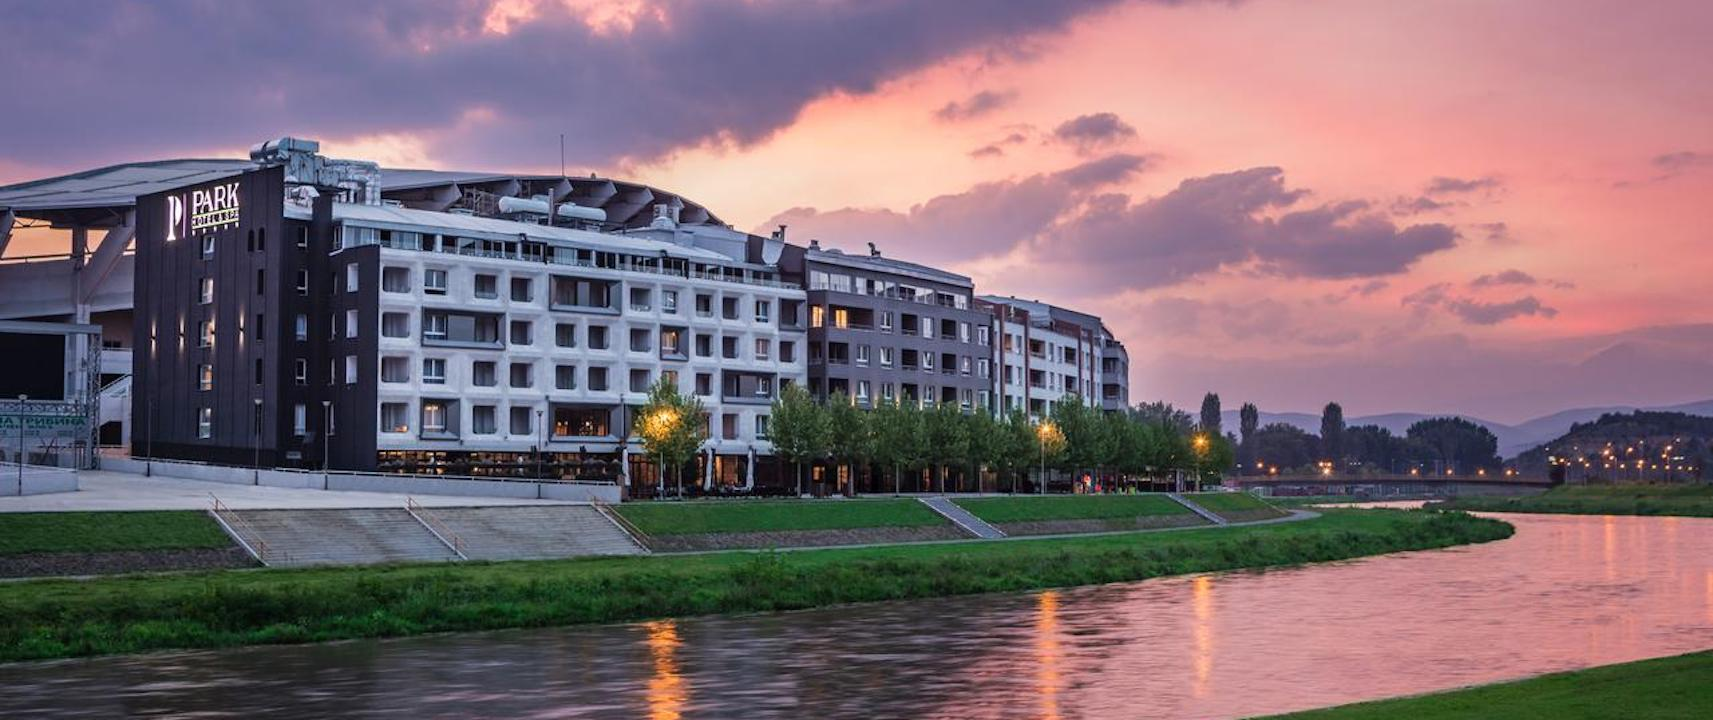 Park Hotel and Spa , Skopje / Macedonia